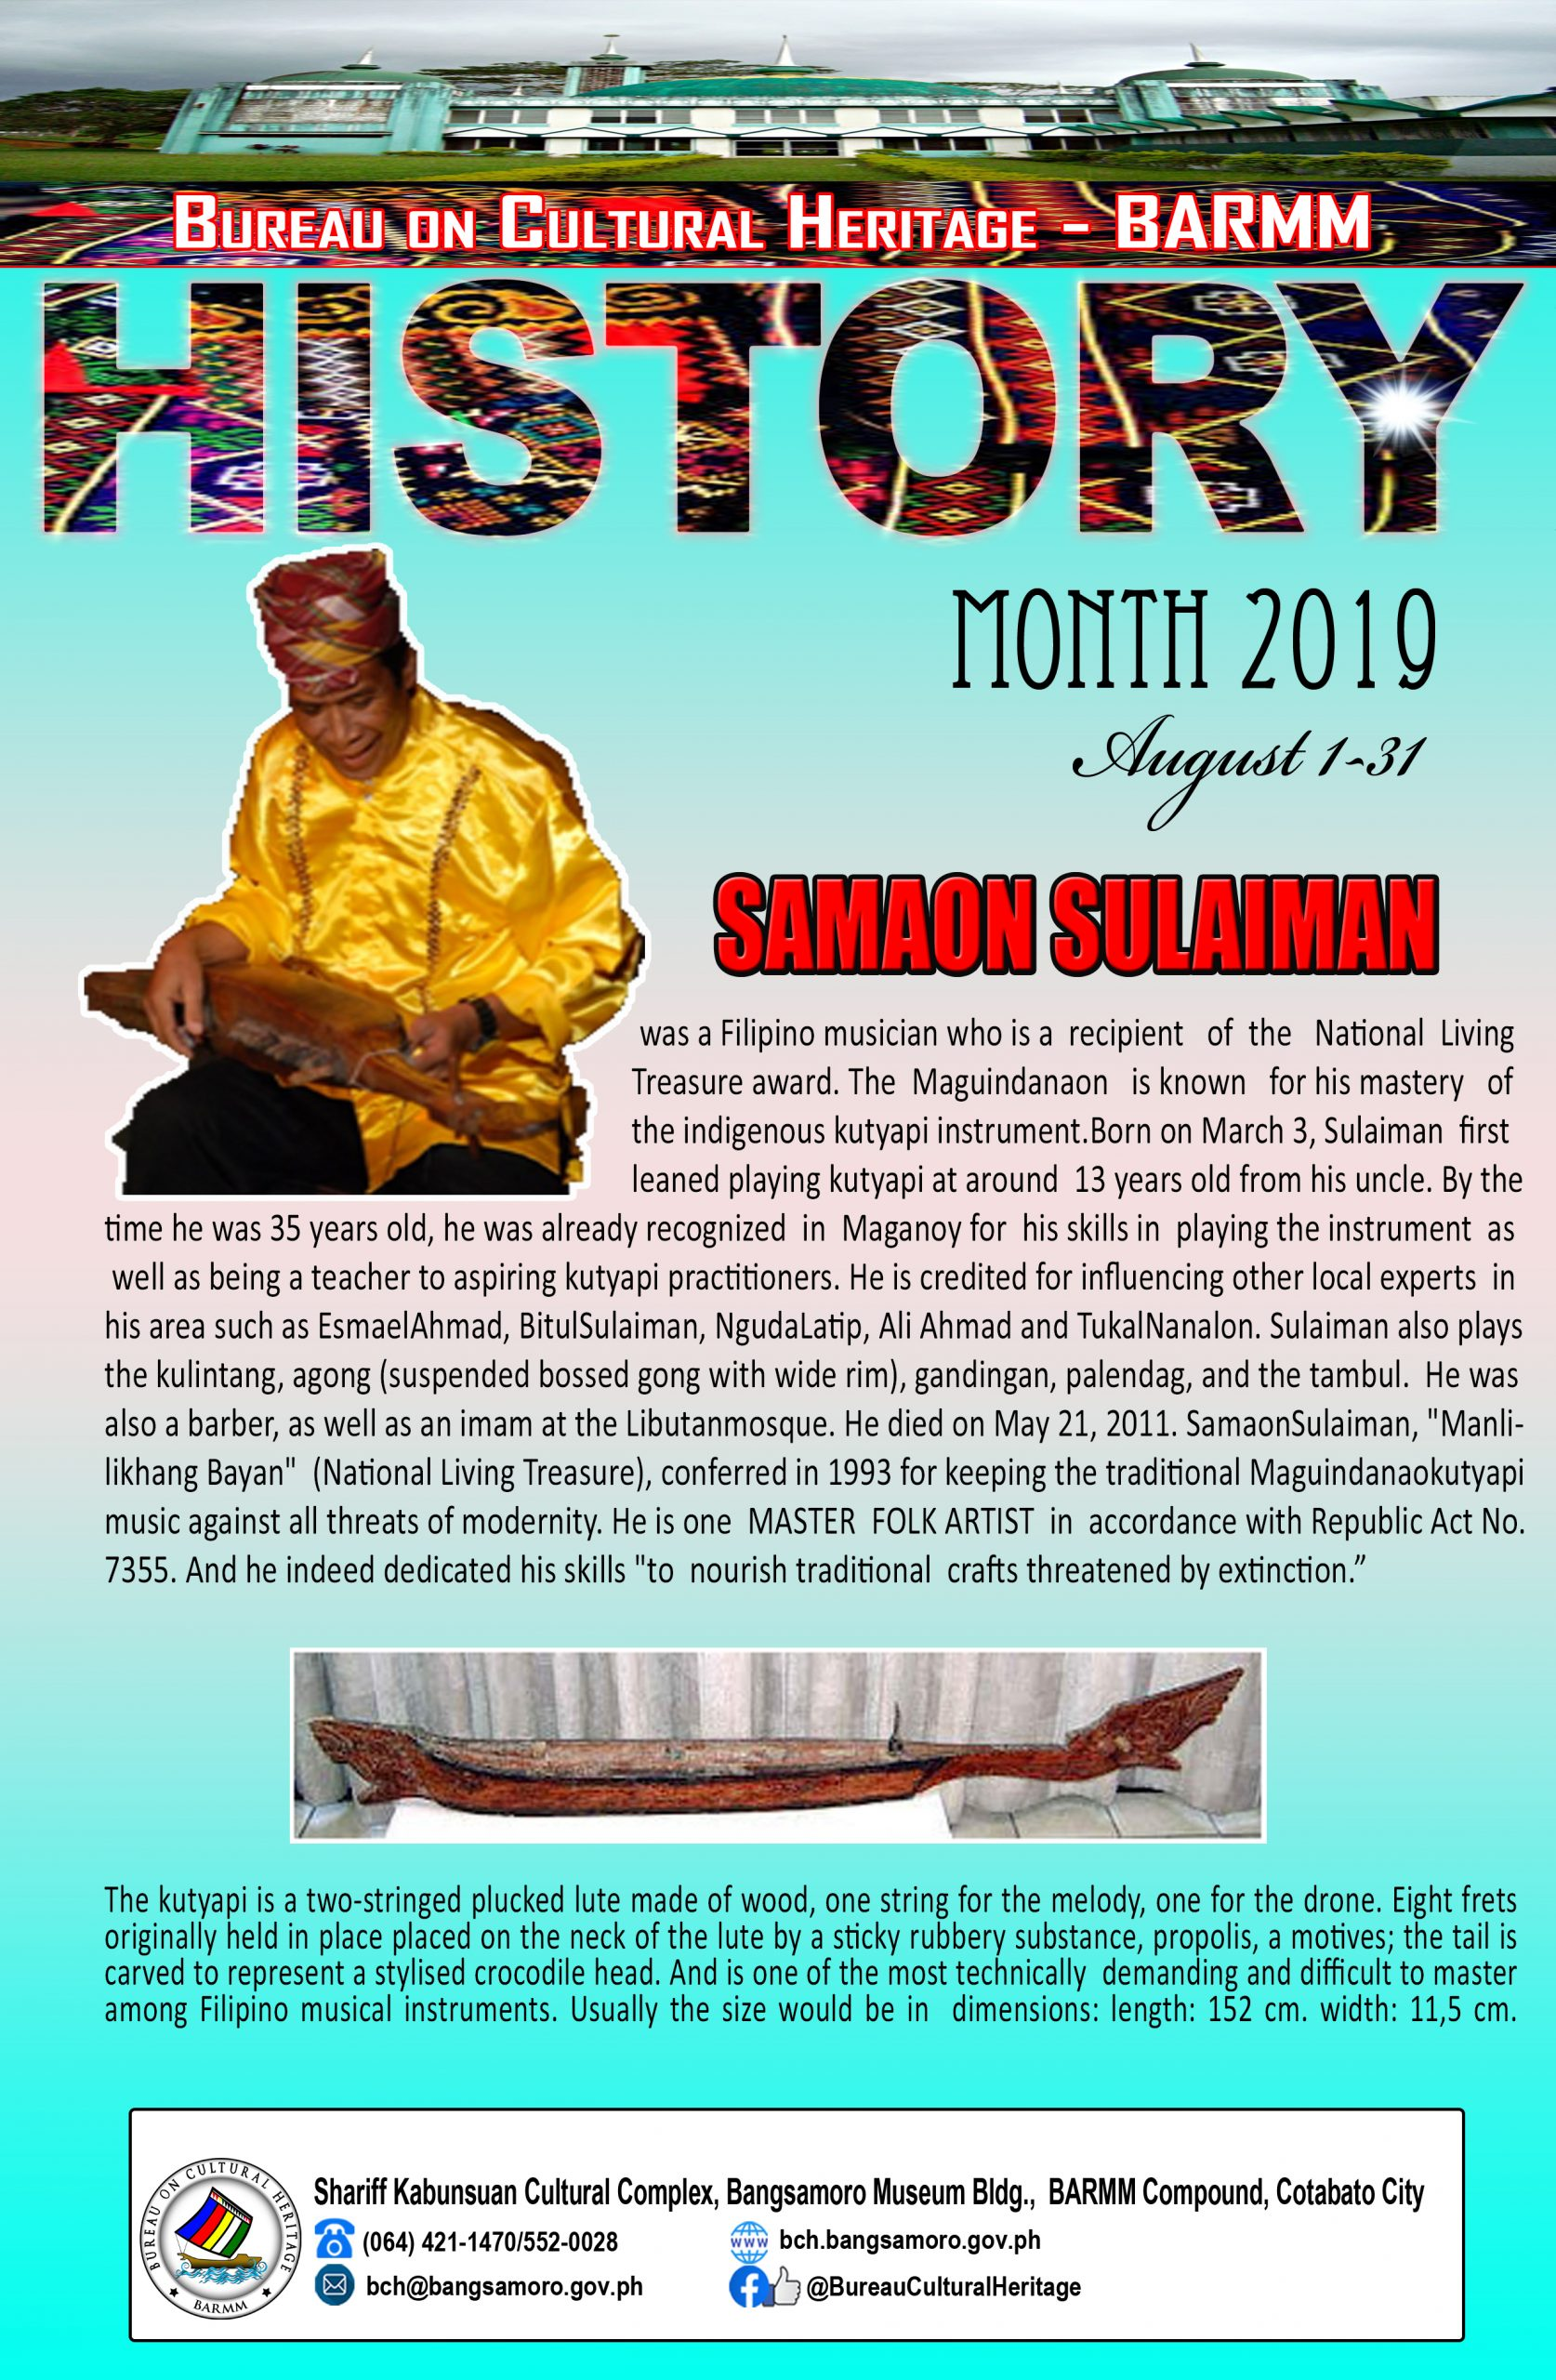 History Month August 2019 Samaon Sulaiman